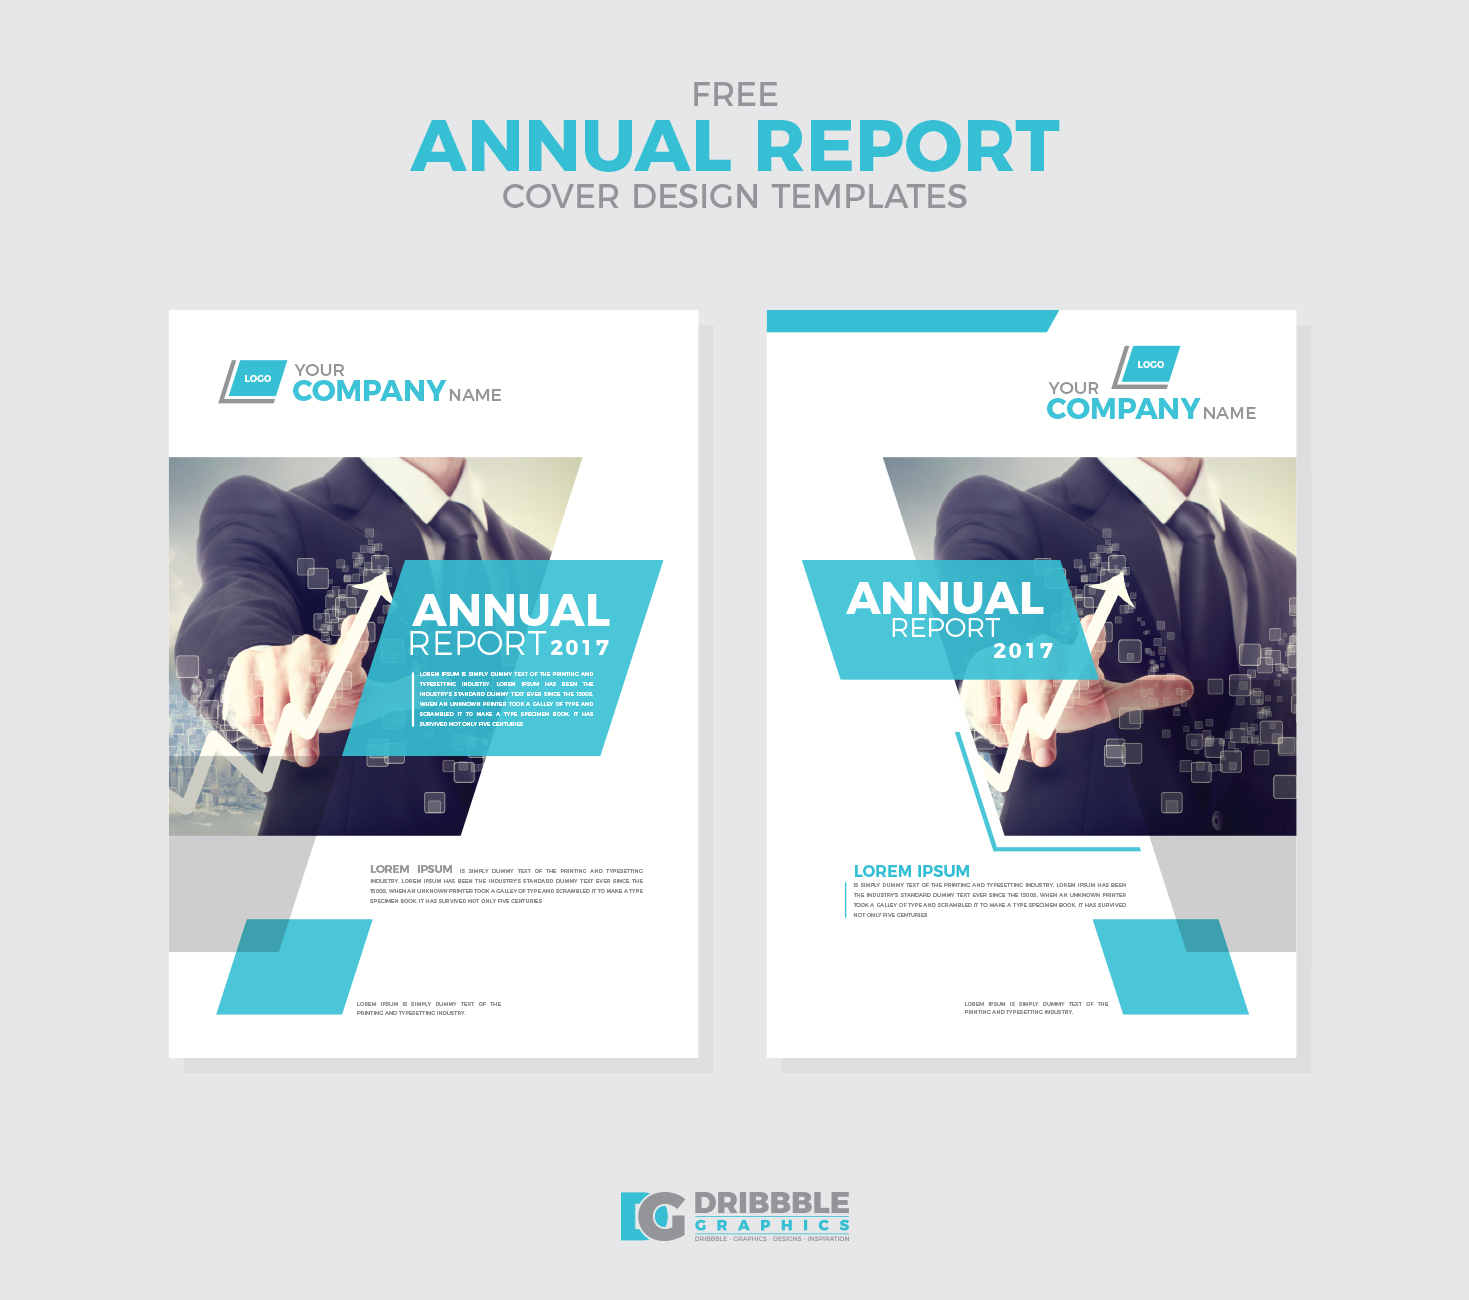 free annual report cover design templates dribbble graphics. Black Bedroom Furniture Sets. Home Design Ideas